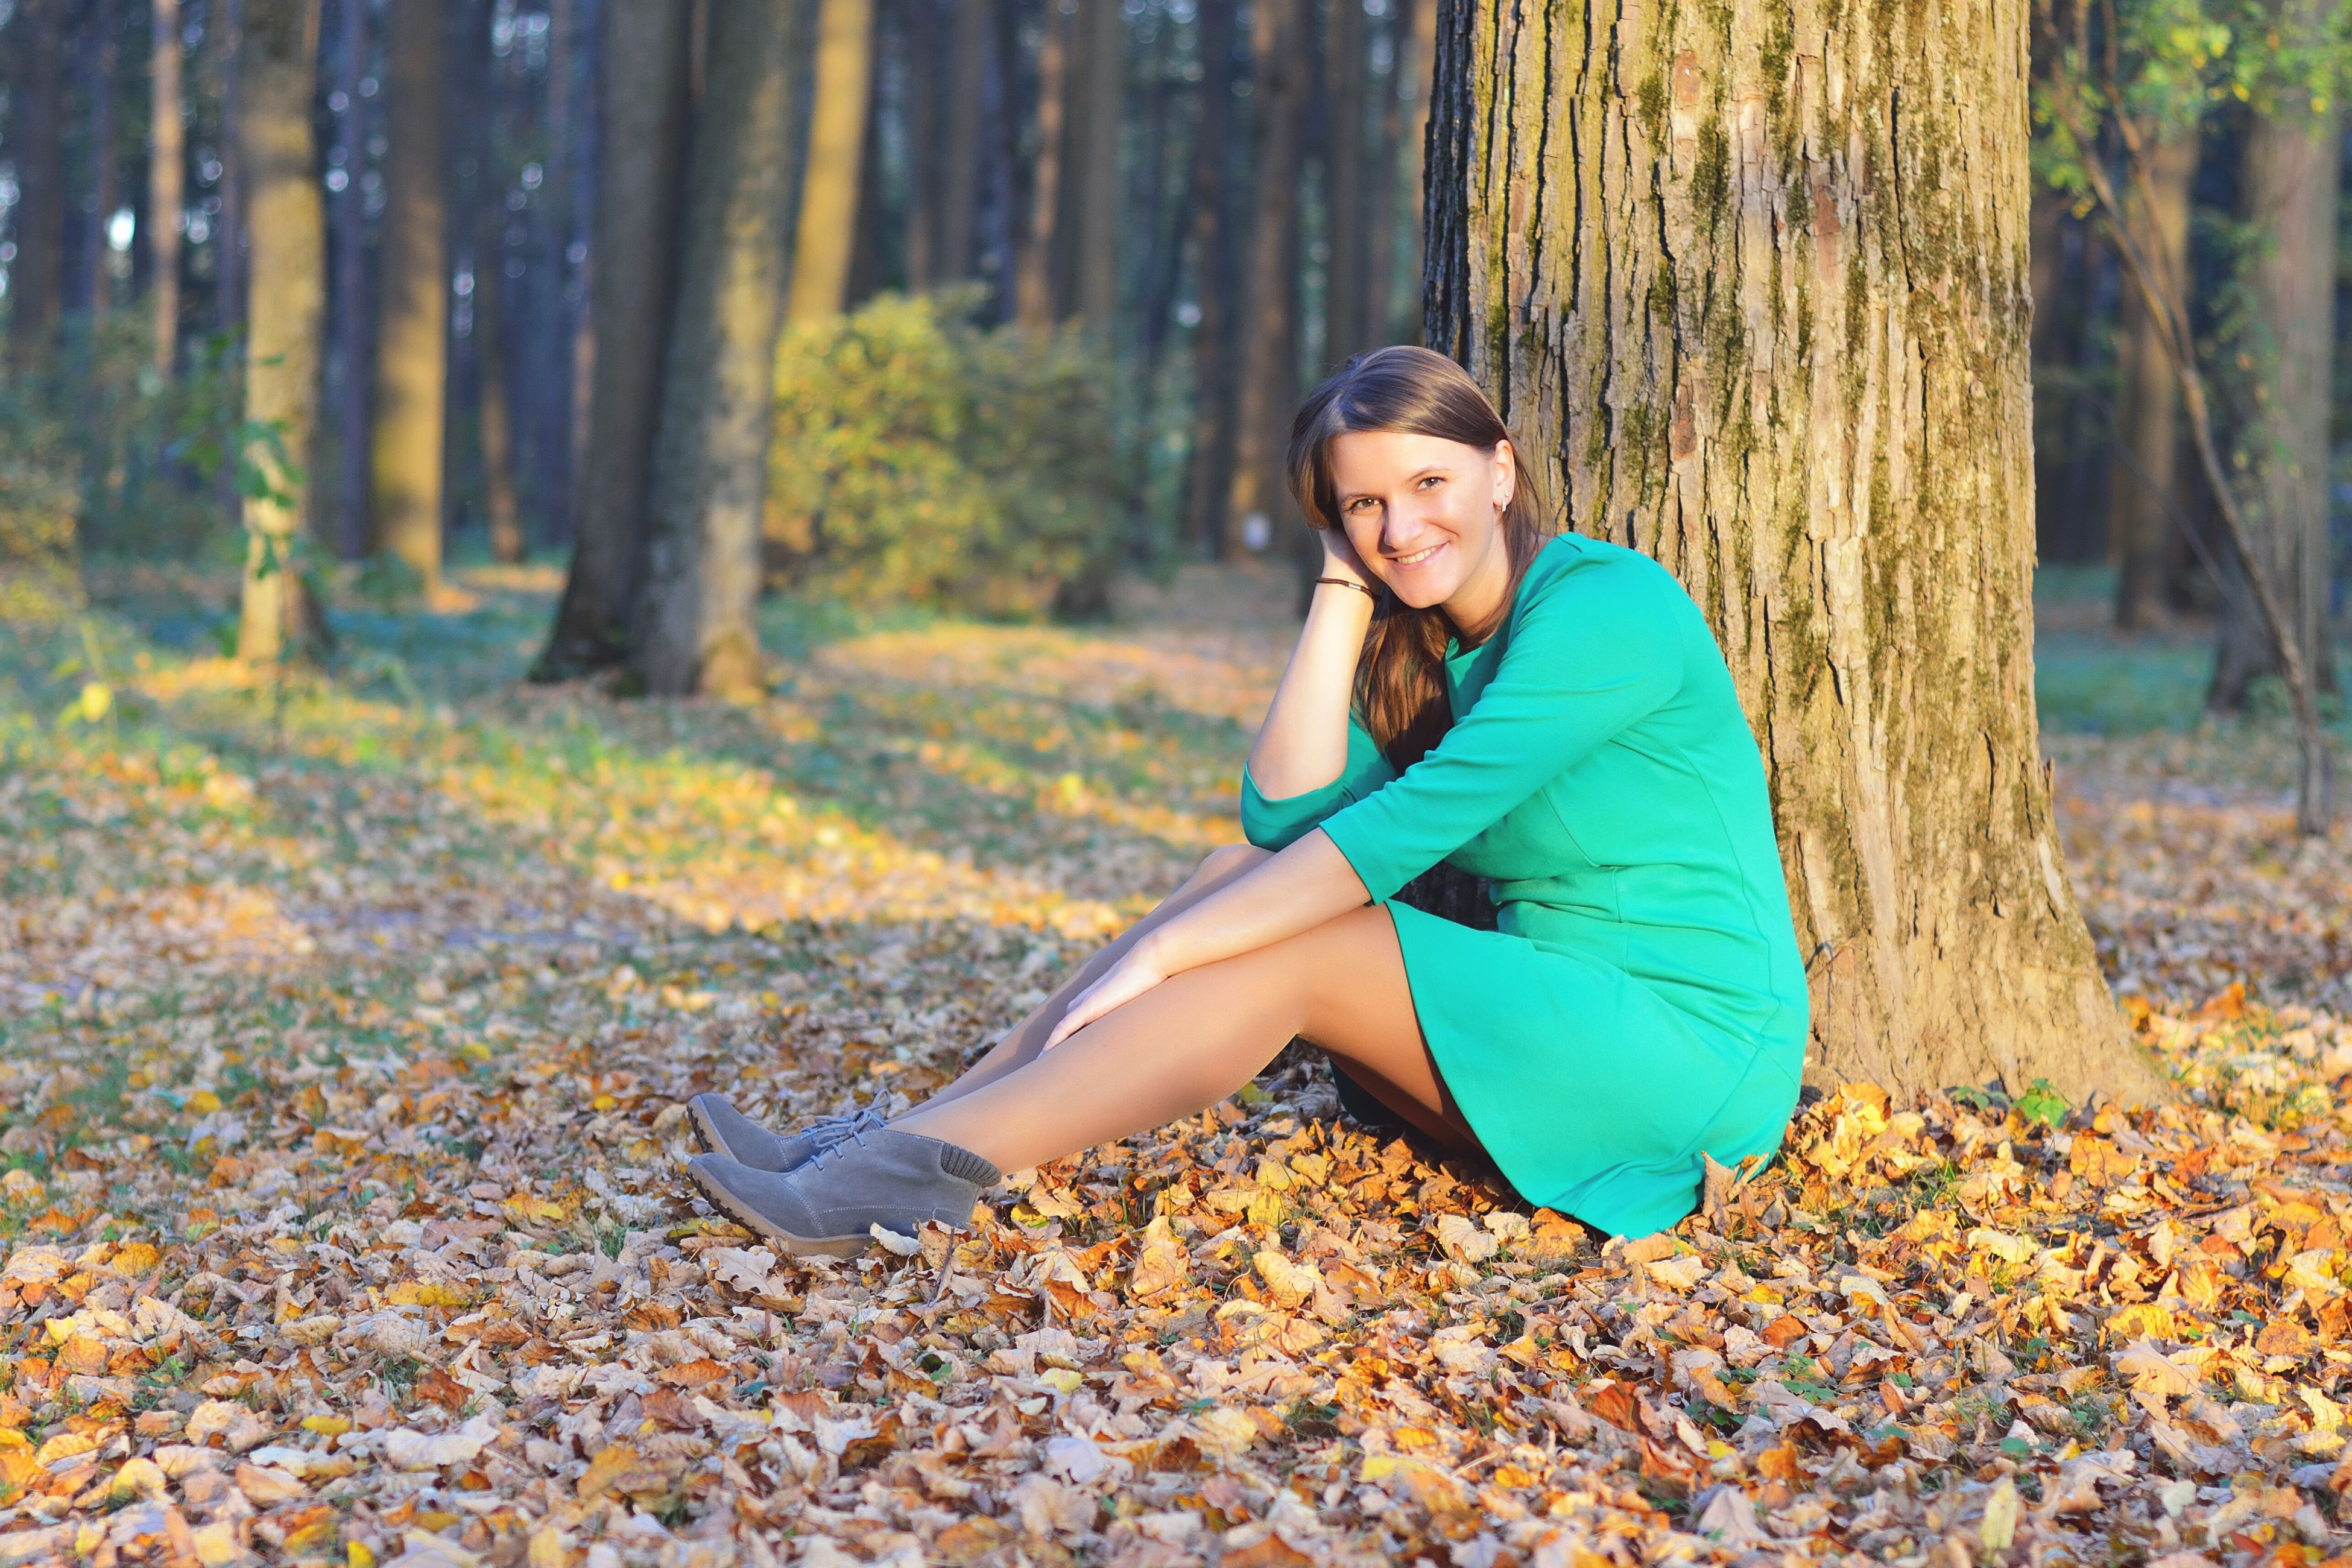 tree, lifestyles, leisure activity, forest, autumn, casual clothing, leaf, person, sitting, standing, nature, young adult, tranquility, change, season, tree trunk, full length, portrait